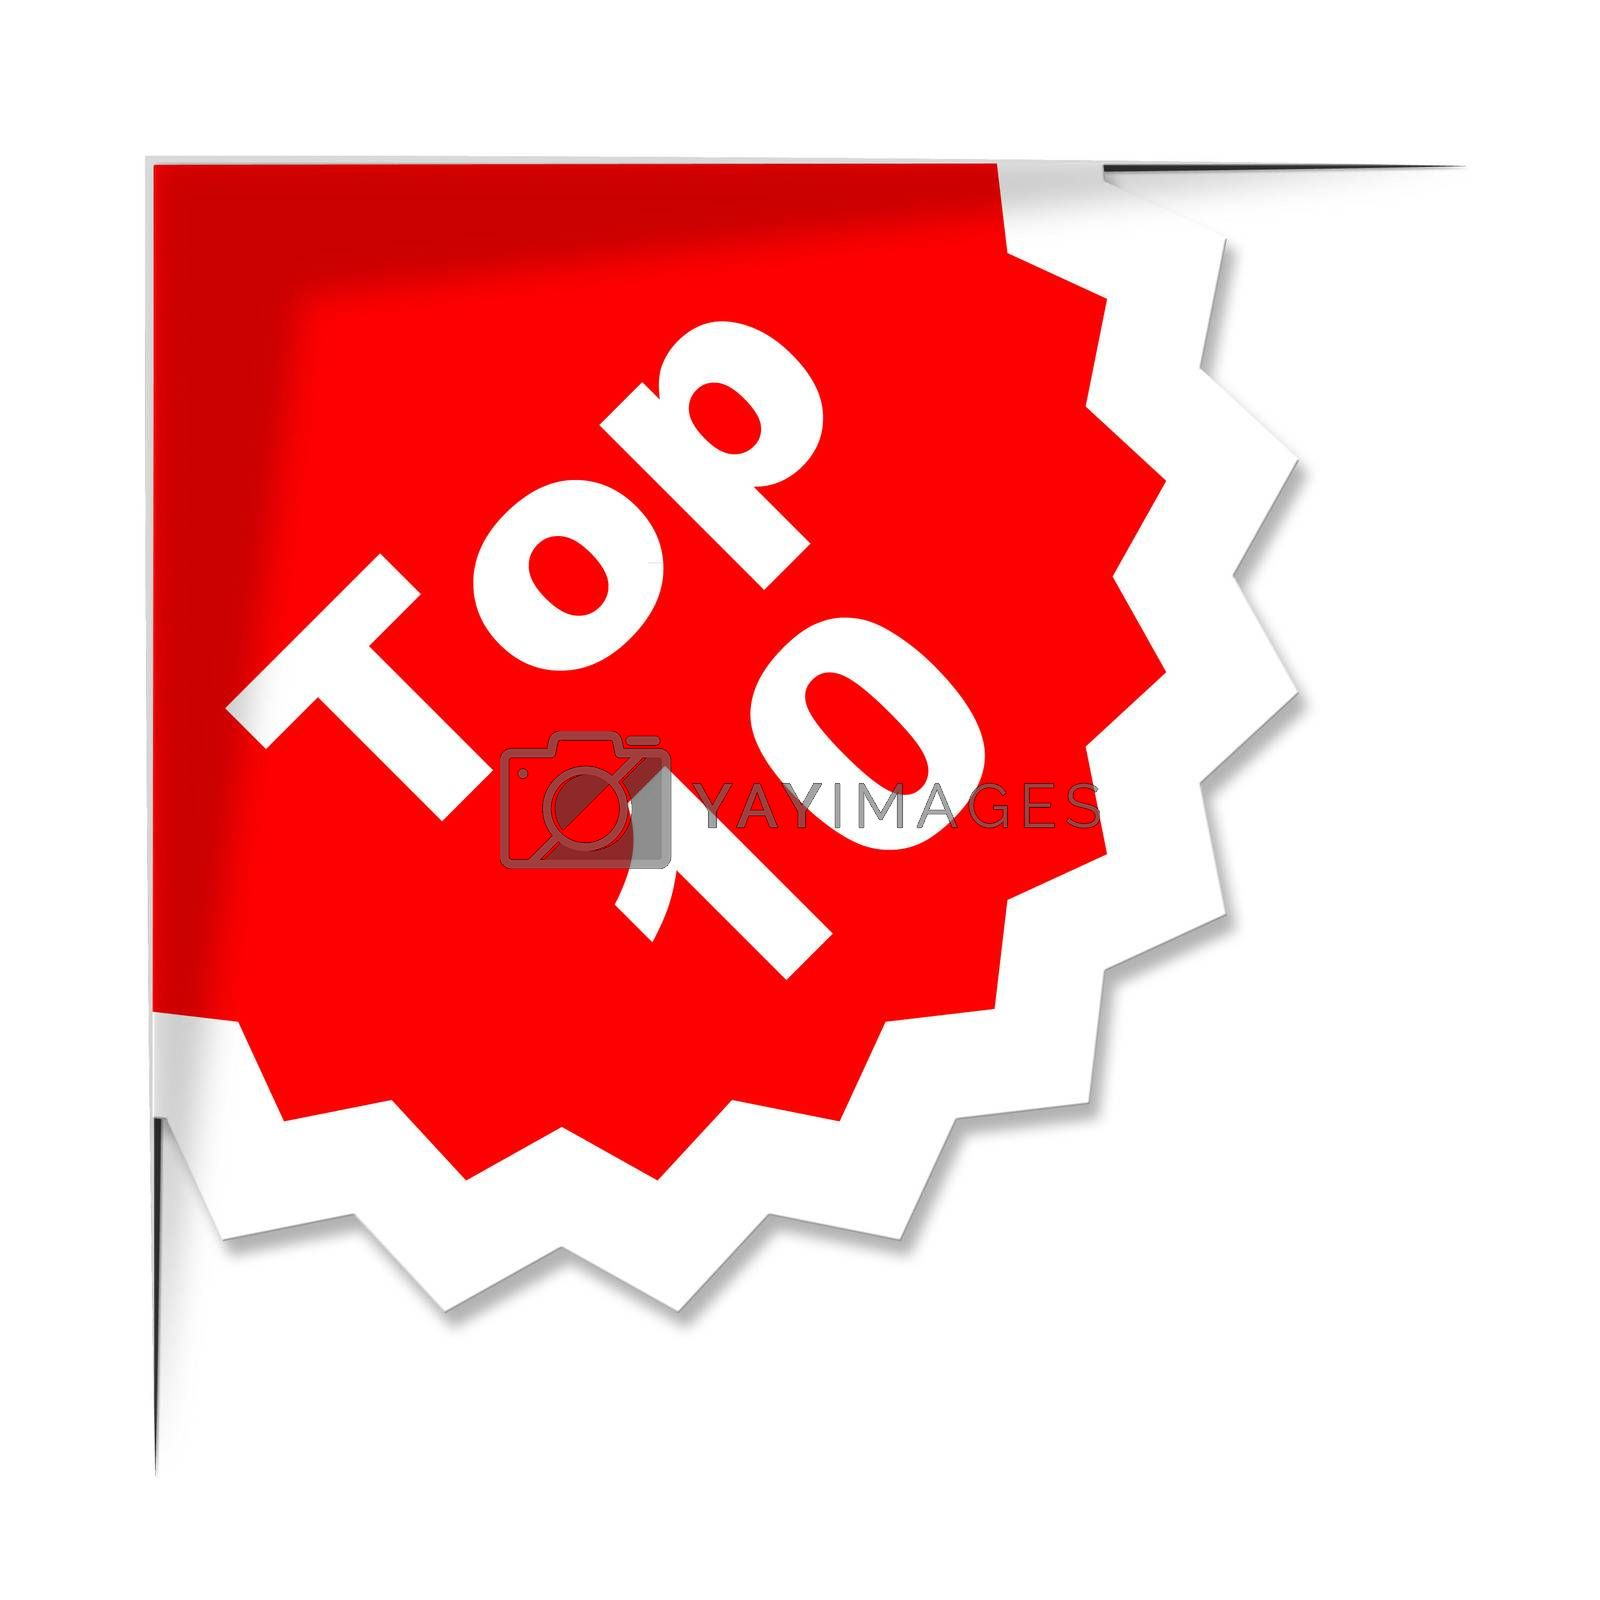 Top Ten Sticker Shows Best Finest And Rated by stuartmiles